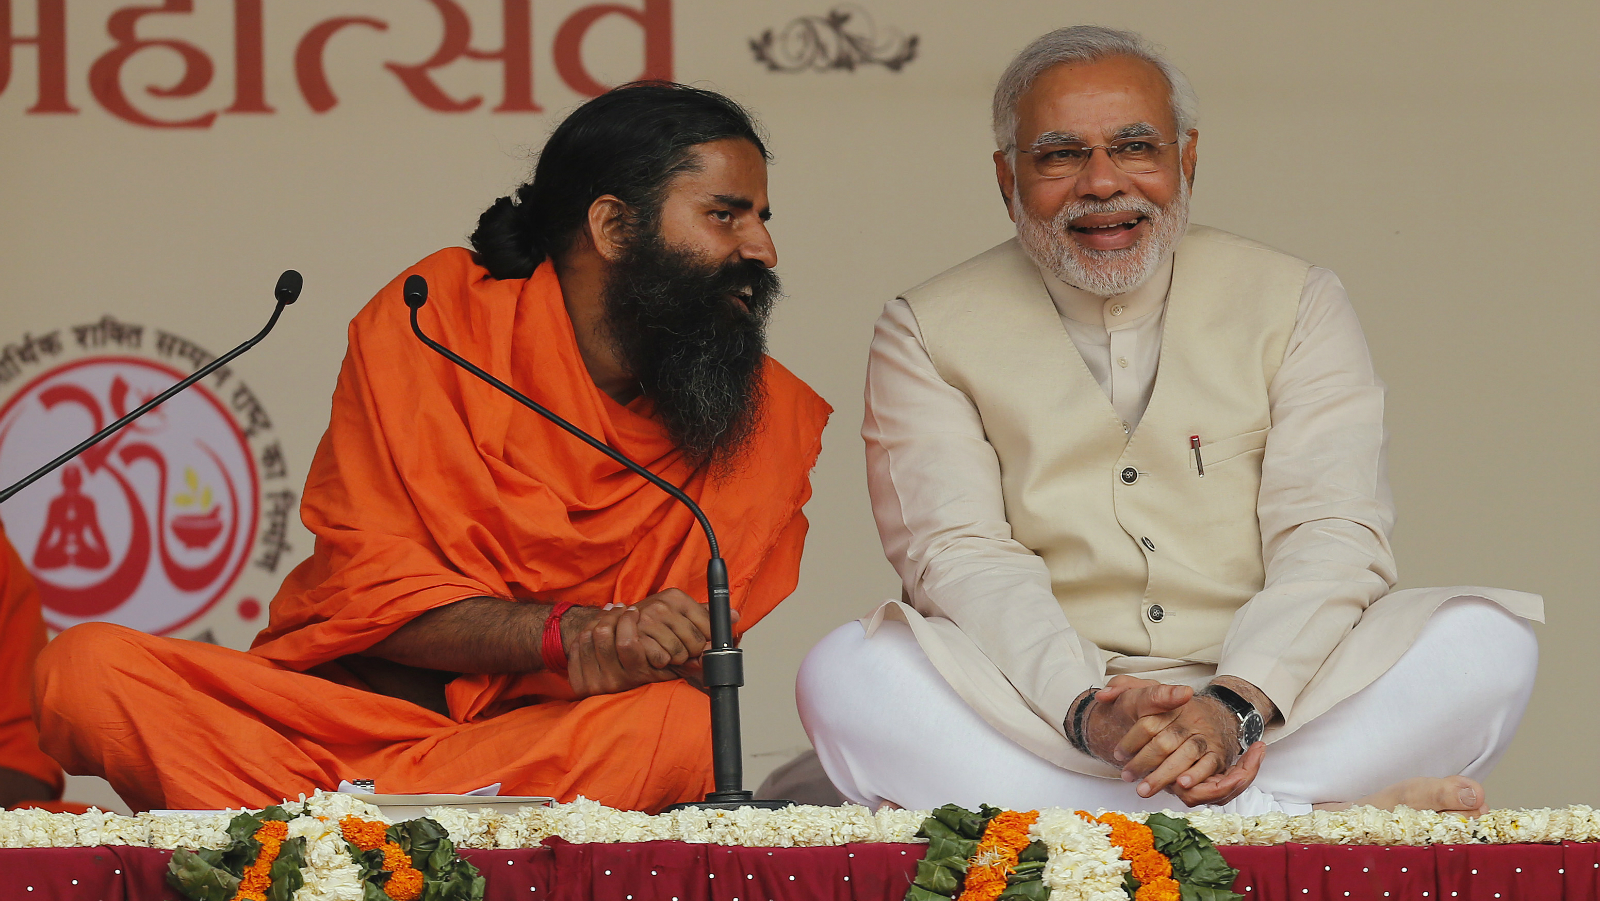 Hindu nationalist Narendra Modi, prime ministerial candidate for India's main opposition Bharatiya Janata Party (BJP) shares a moment with Indian yoga guru Baba Ramdev (L) during a Yoga Mahotsav or festival, in New Delhi March 23, 2014. The mega 'Yoga Mahotsav' on Sunday is being observed simultaneously at various places across the country, local media reported.